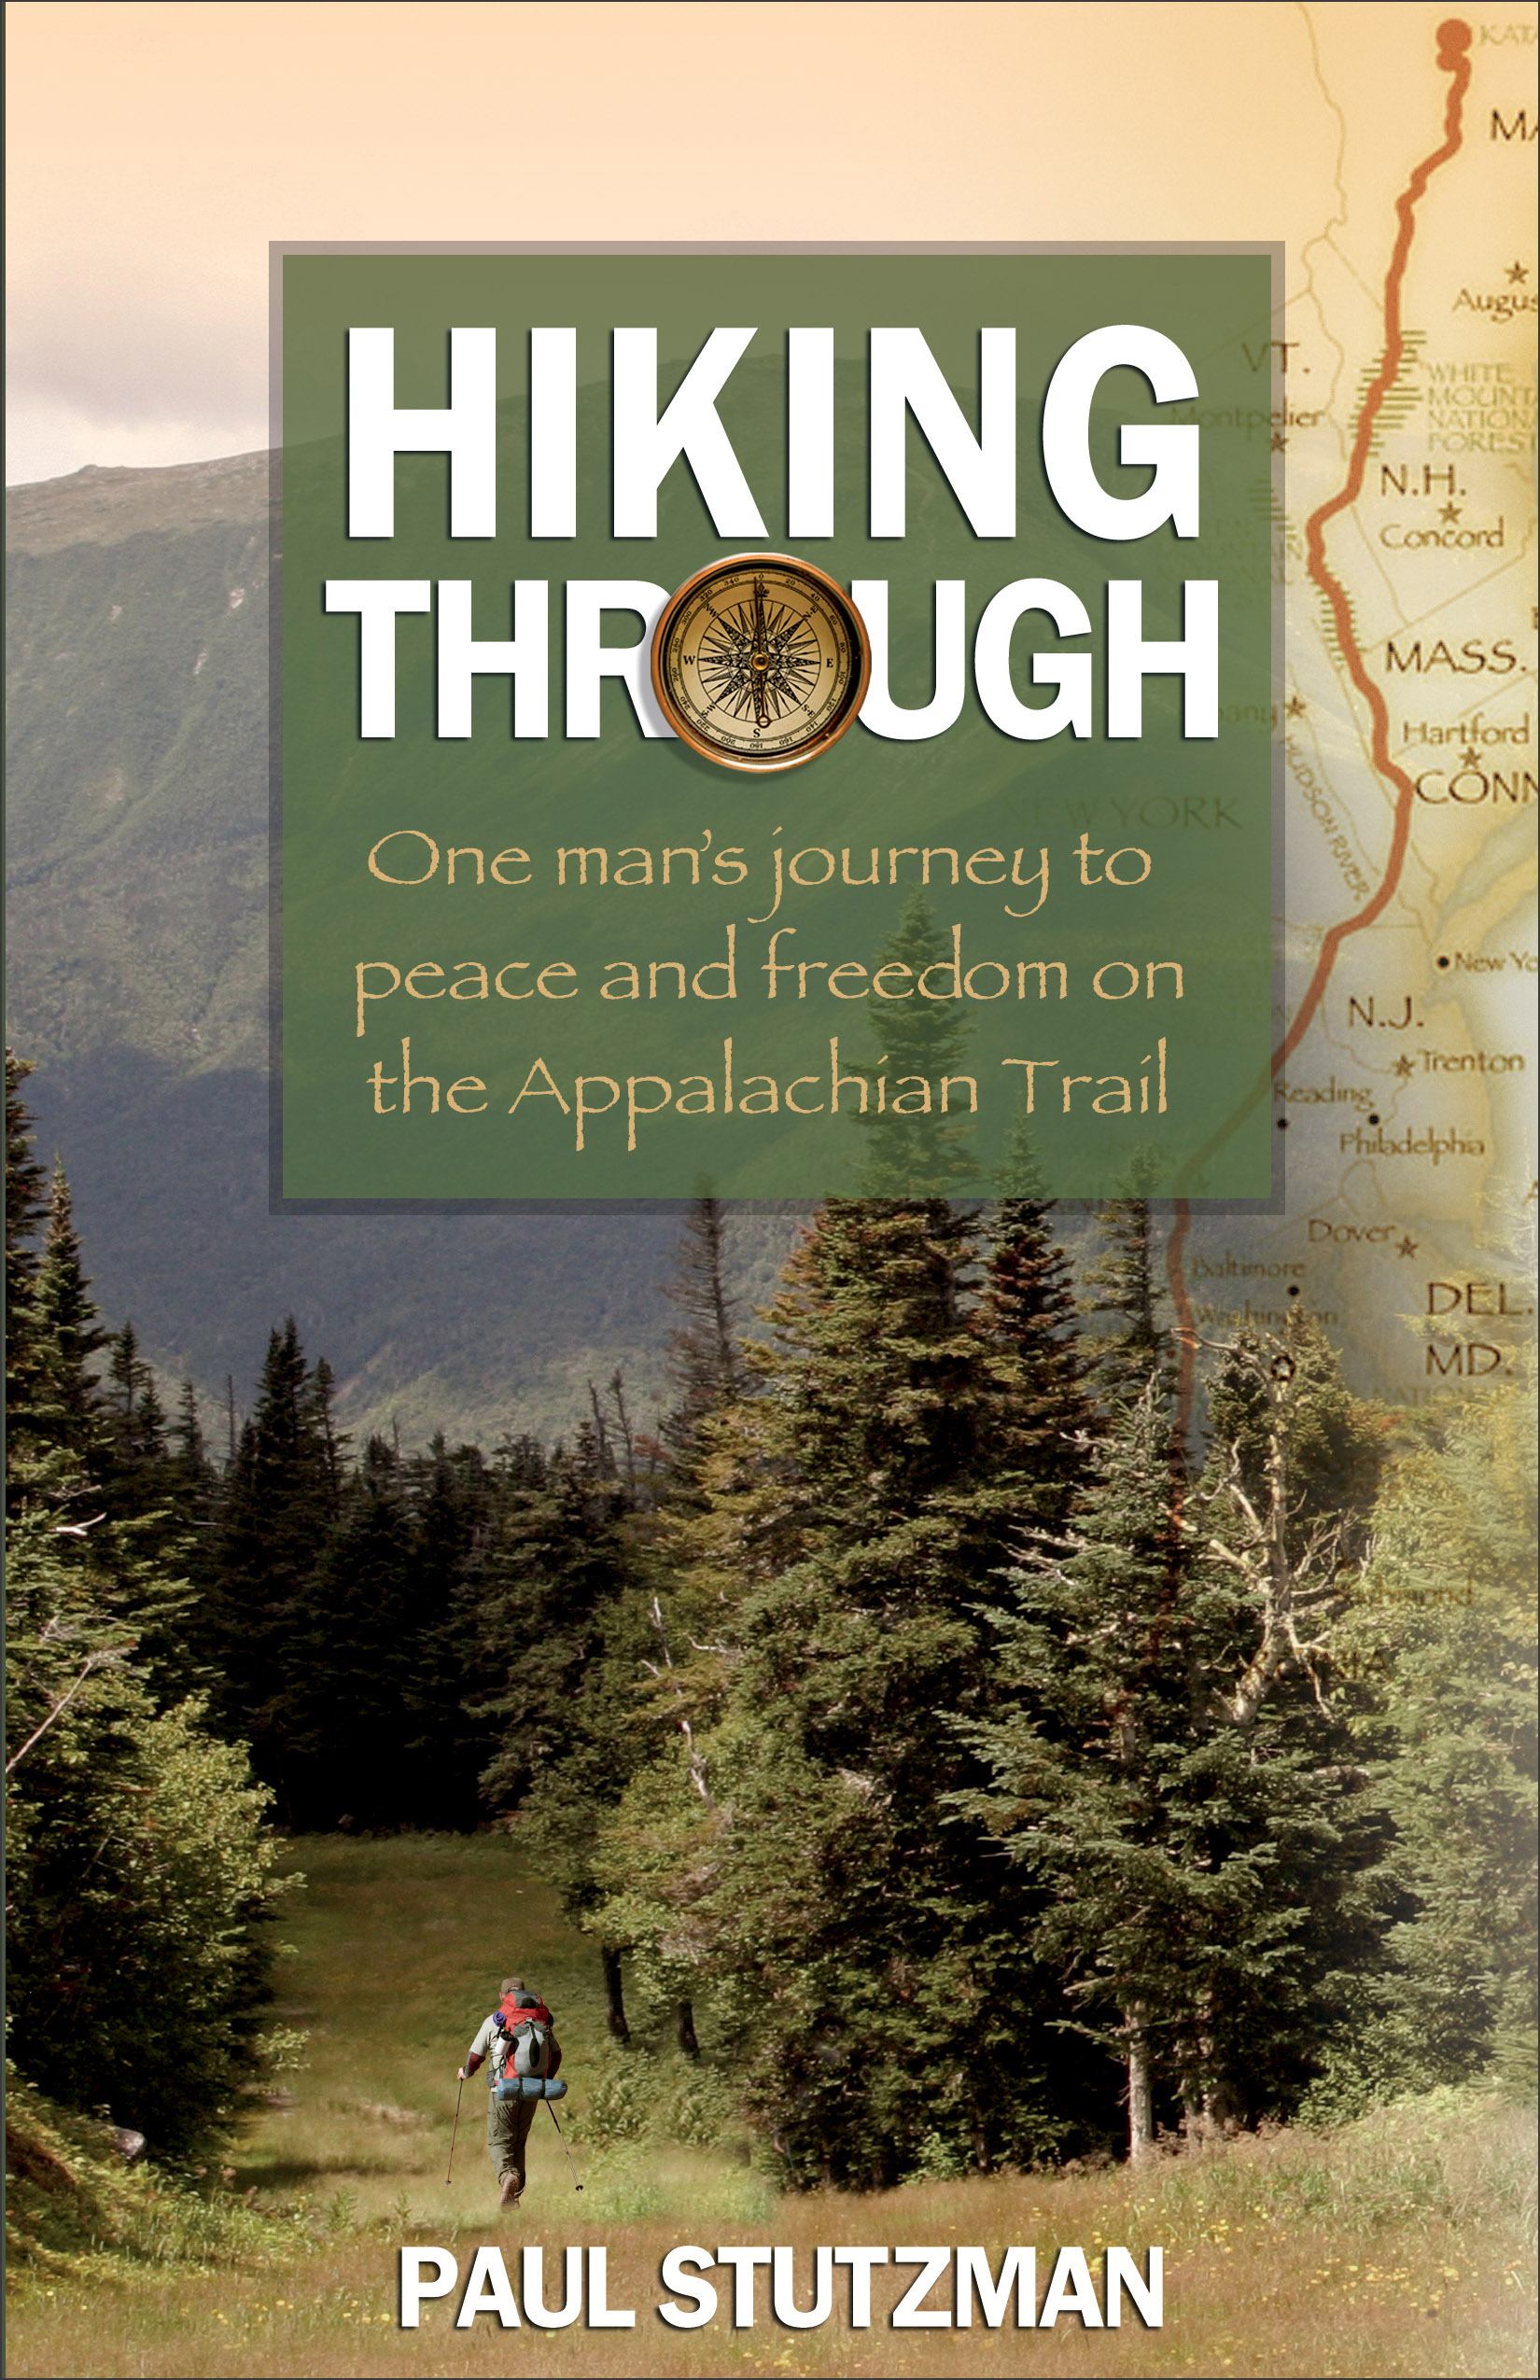 Hiking Through One Man's Journey to Peace and Freedom on the Appalachian Trail